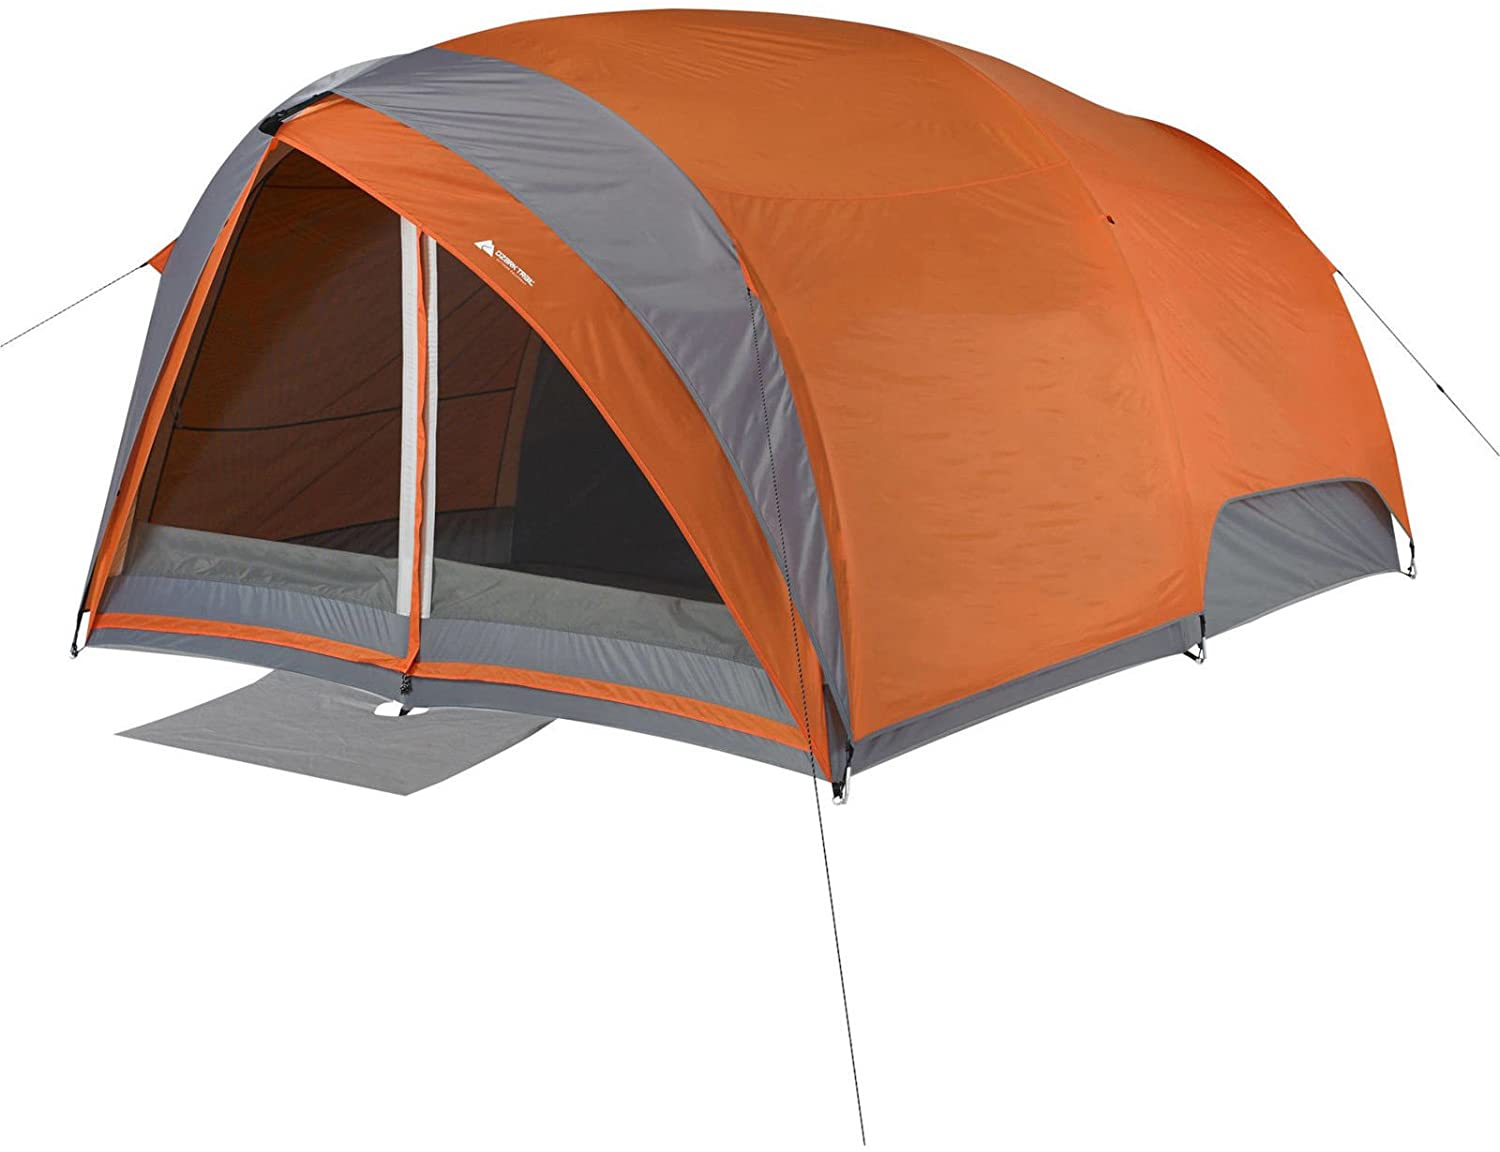 Best Ozark Trail Tents For The Money In 2021 Reviews 31